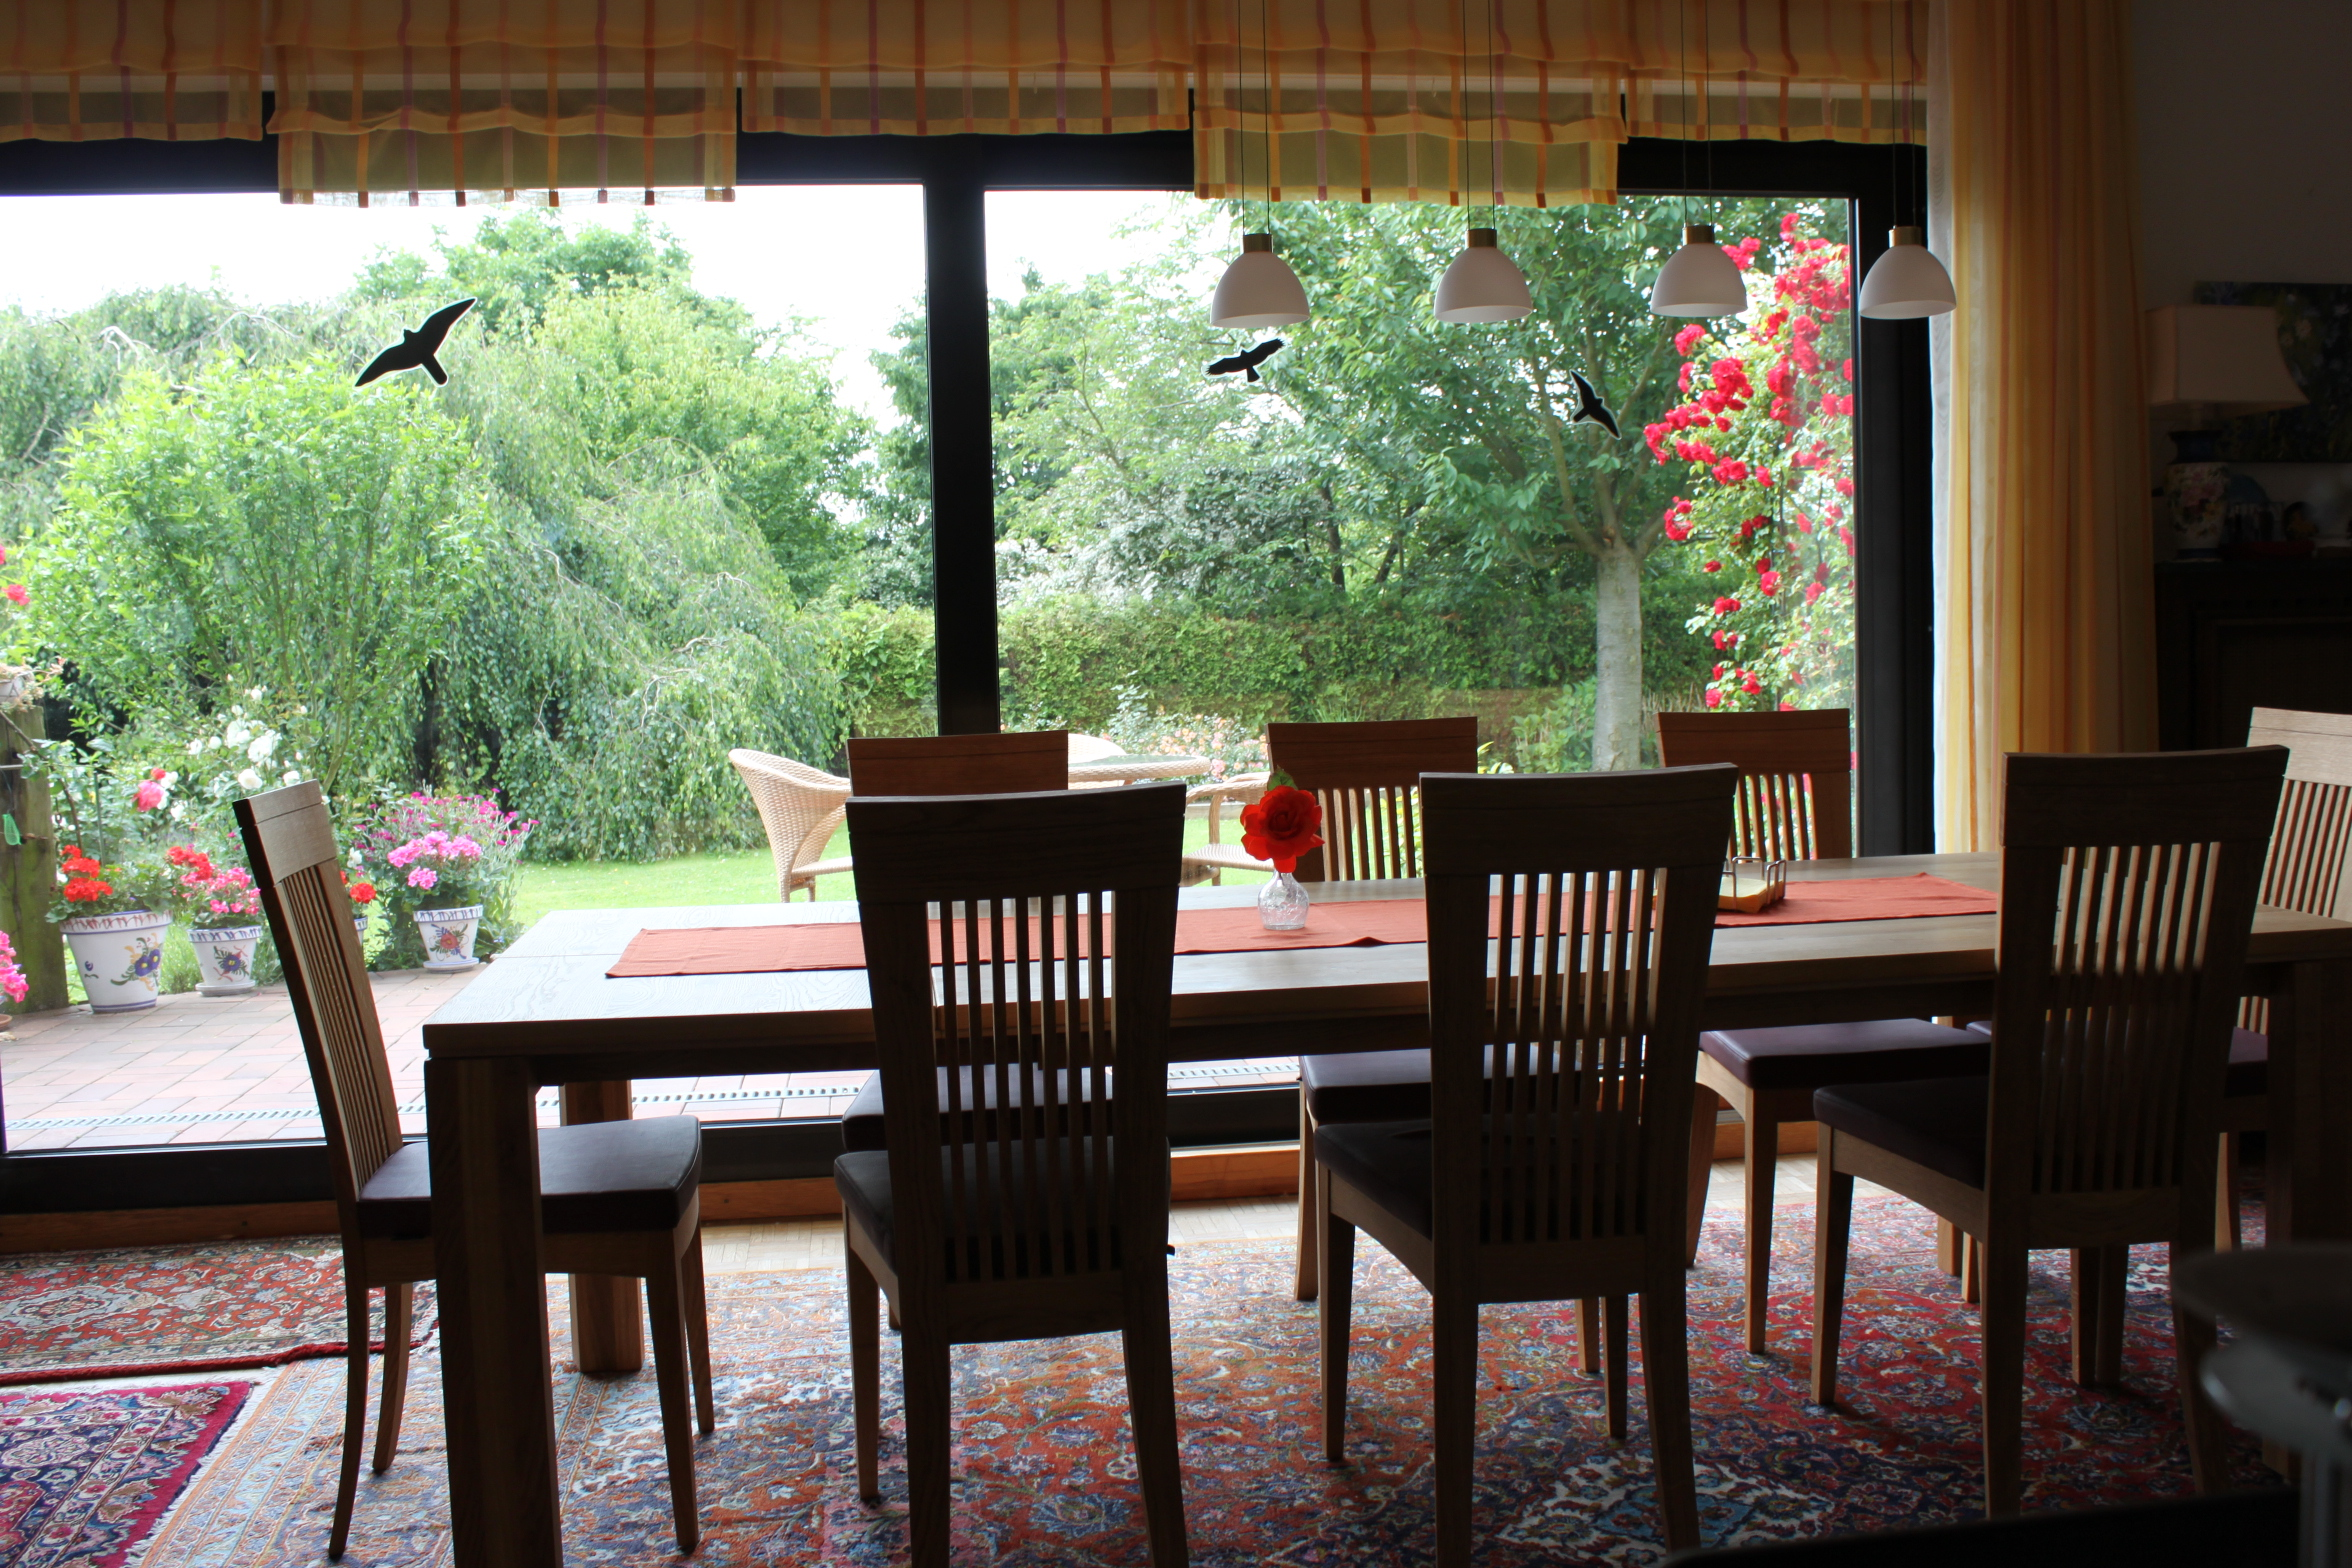 villa de leiva christian singles - entire home/apt for ₹6143 simple apartment for 5 people, variable price according to the number of people who will host it villa de leyva is characterized as a quiet place.